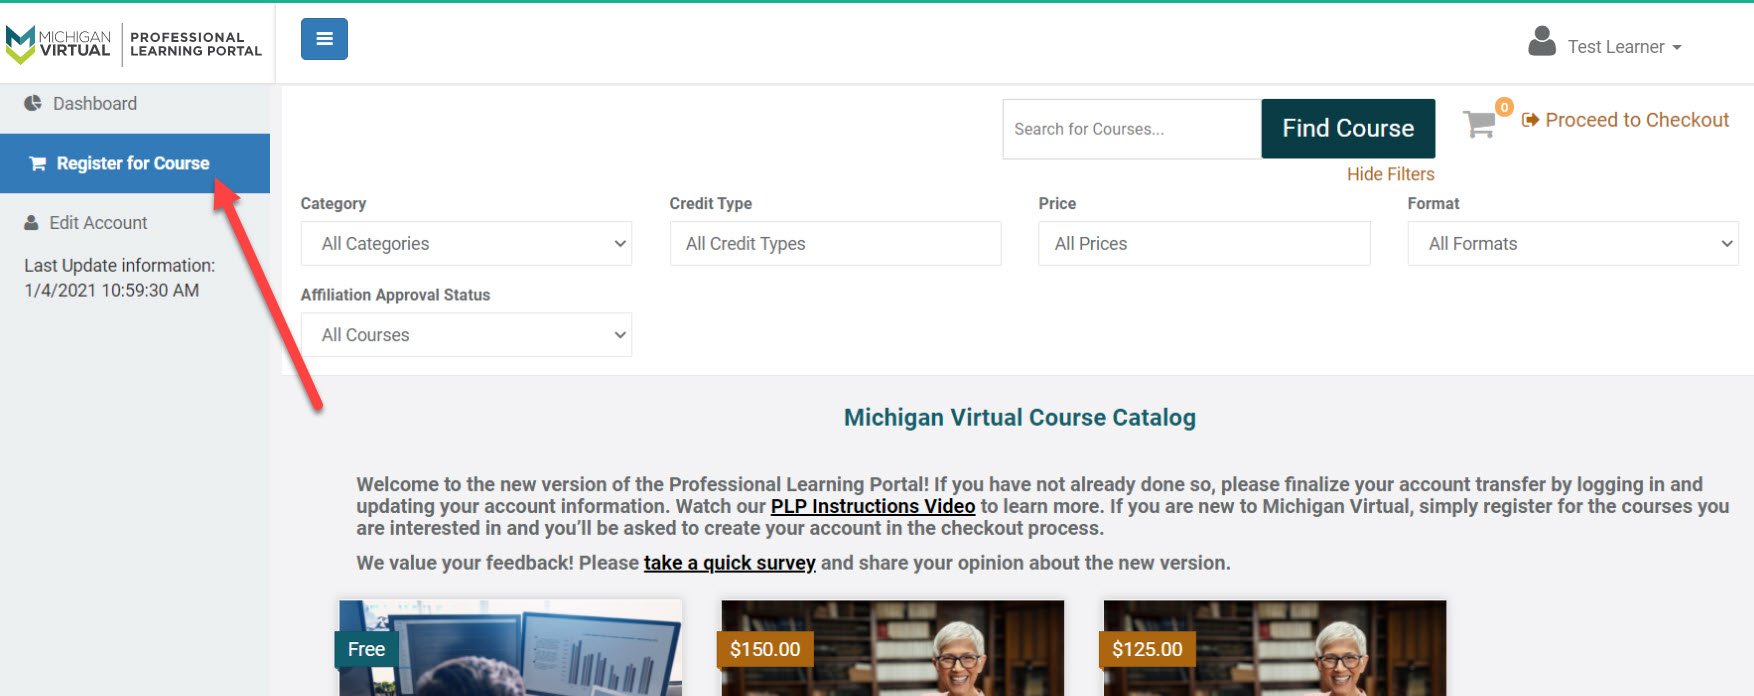 Image displays the Register for Course option selected within the Professional Learning Portal. An arrow points to this menu option. Search fields Category, Credit Type, Price, Format and Affiliation Approval Status are shown above default courses.